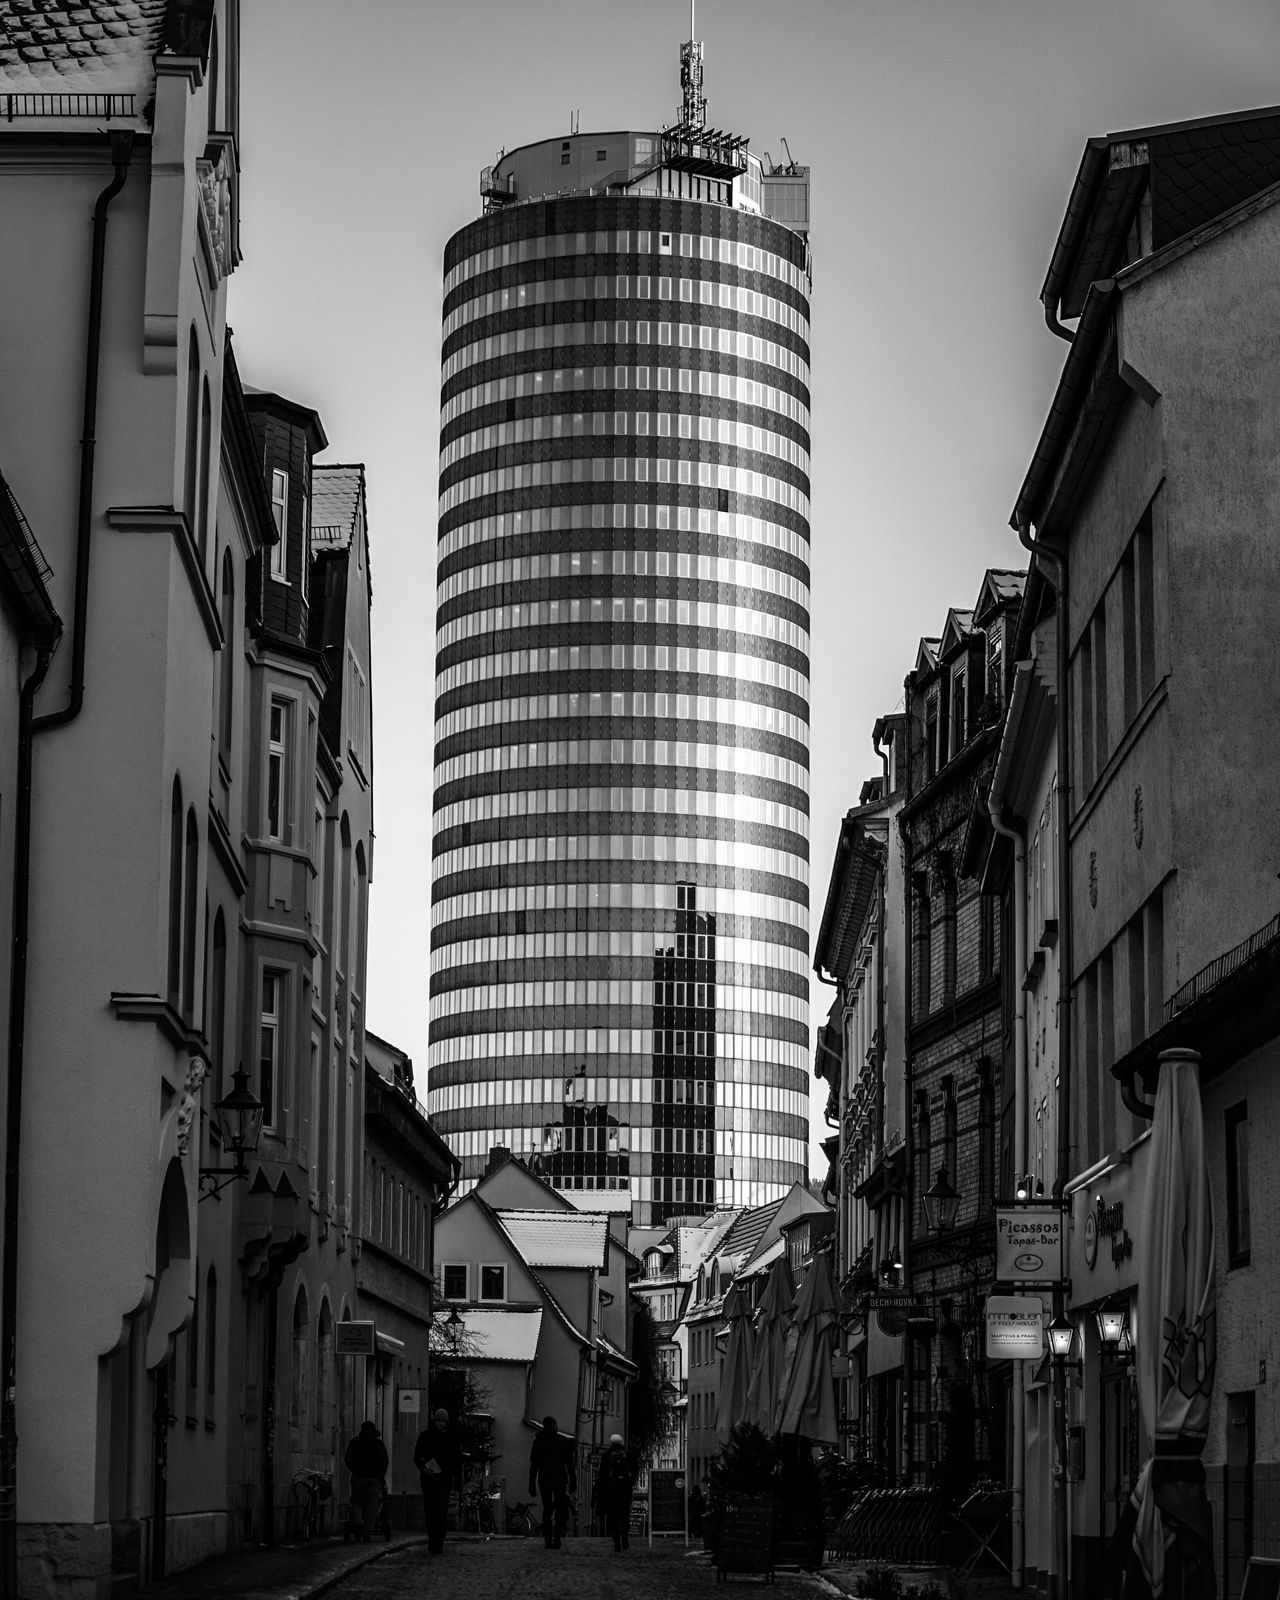 Architecture Building Exterior Built Structure City Low Angle View Sky Outdoors Real People Day Jena Blackandwhite Black And White Bnw Bw